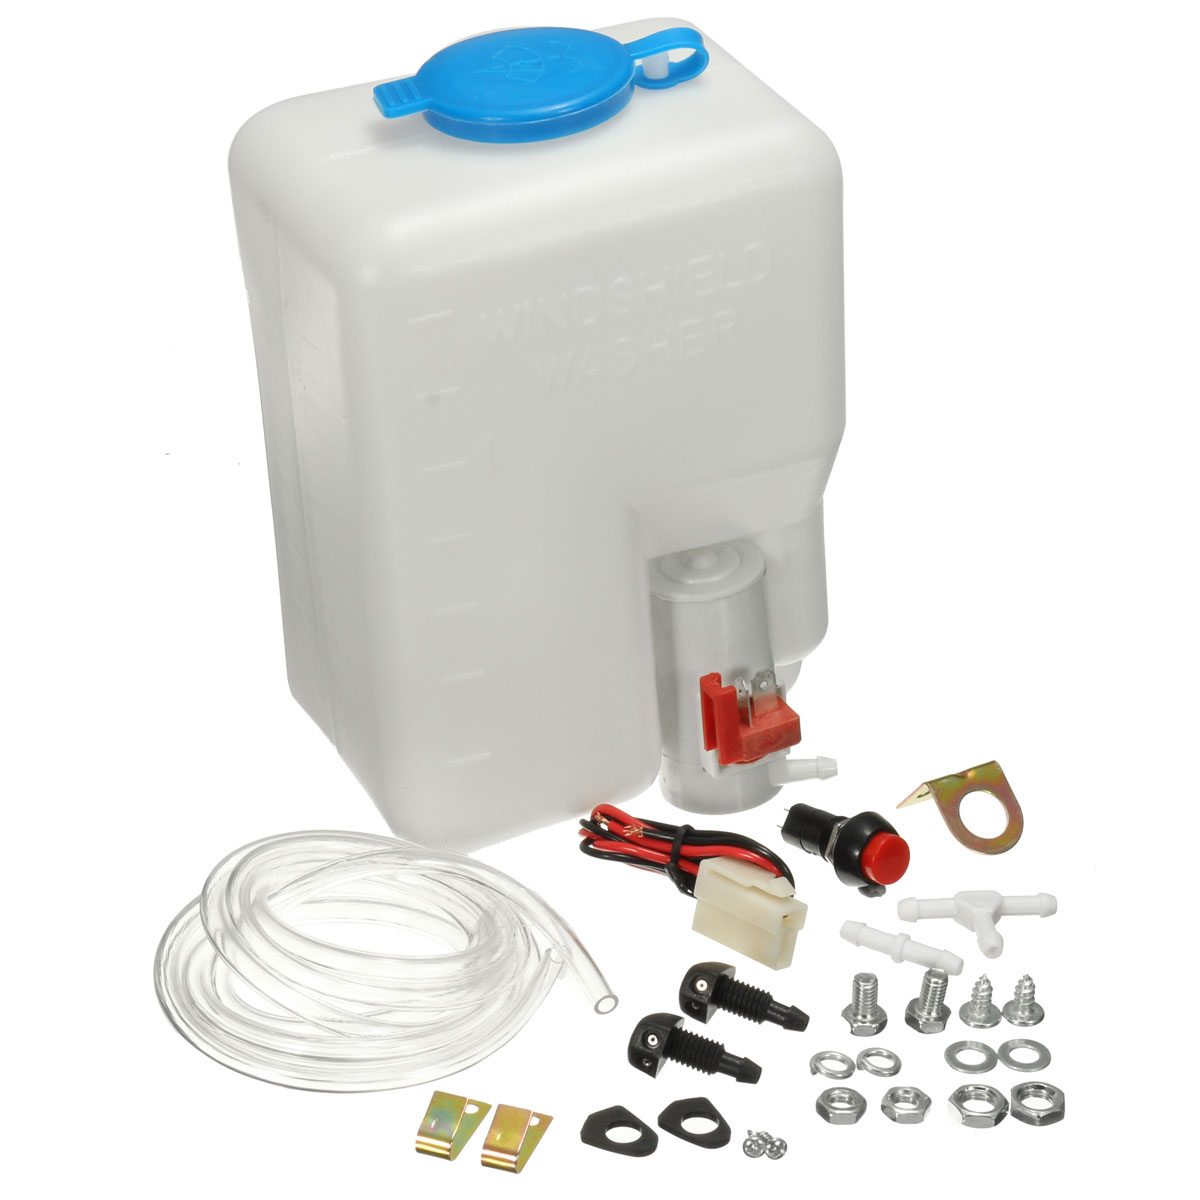 2016 Brand New 12V Universal Car Windscreen Washer Bottle Kit With Pump Jet Button Switch 160186